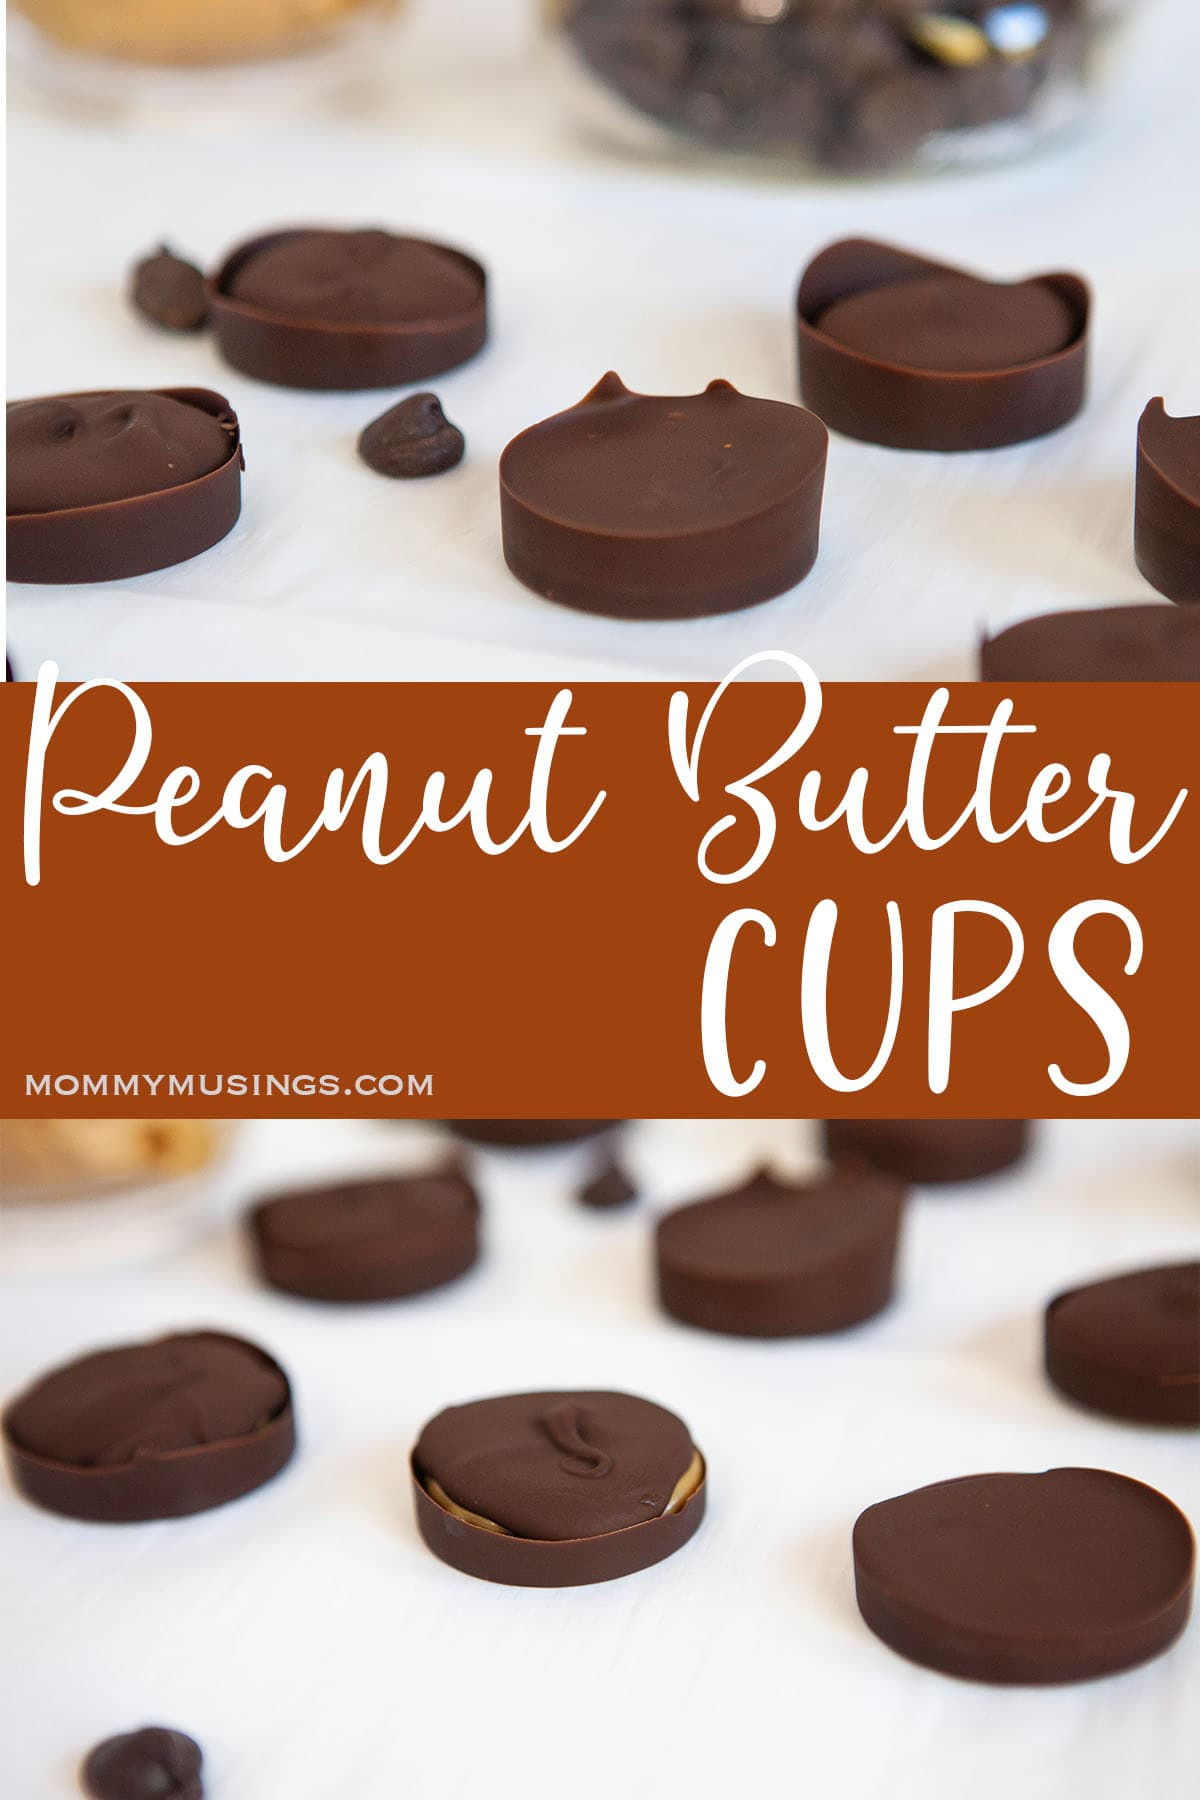 homemade reeces cups candies with text which reads peanut butter cups